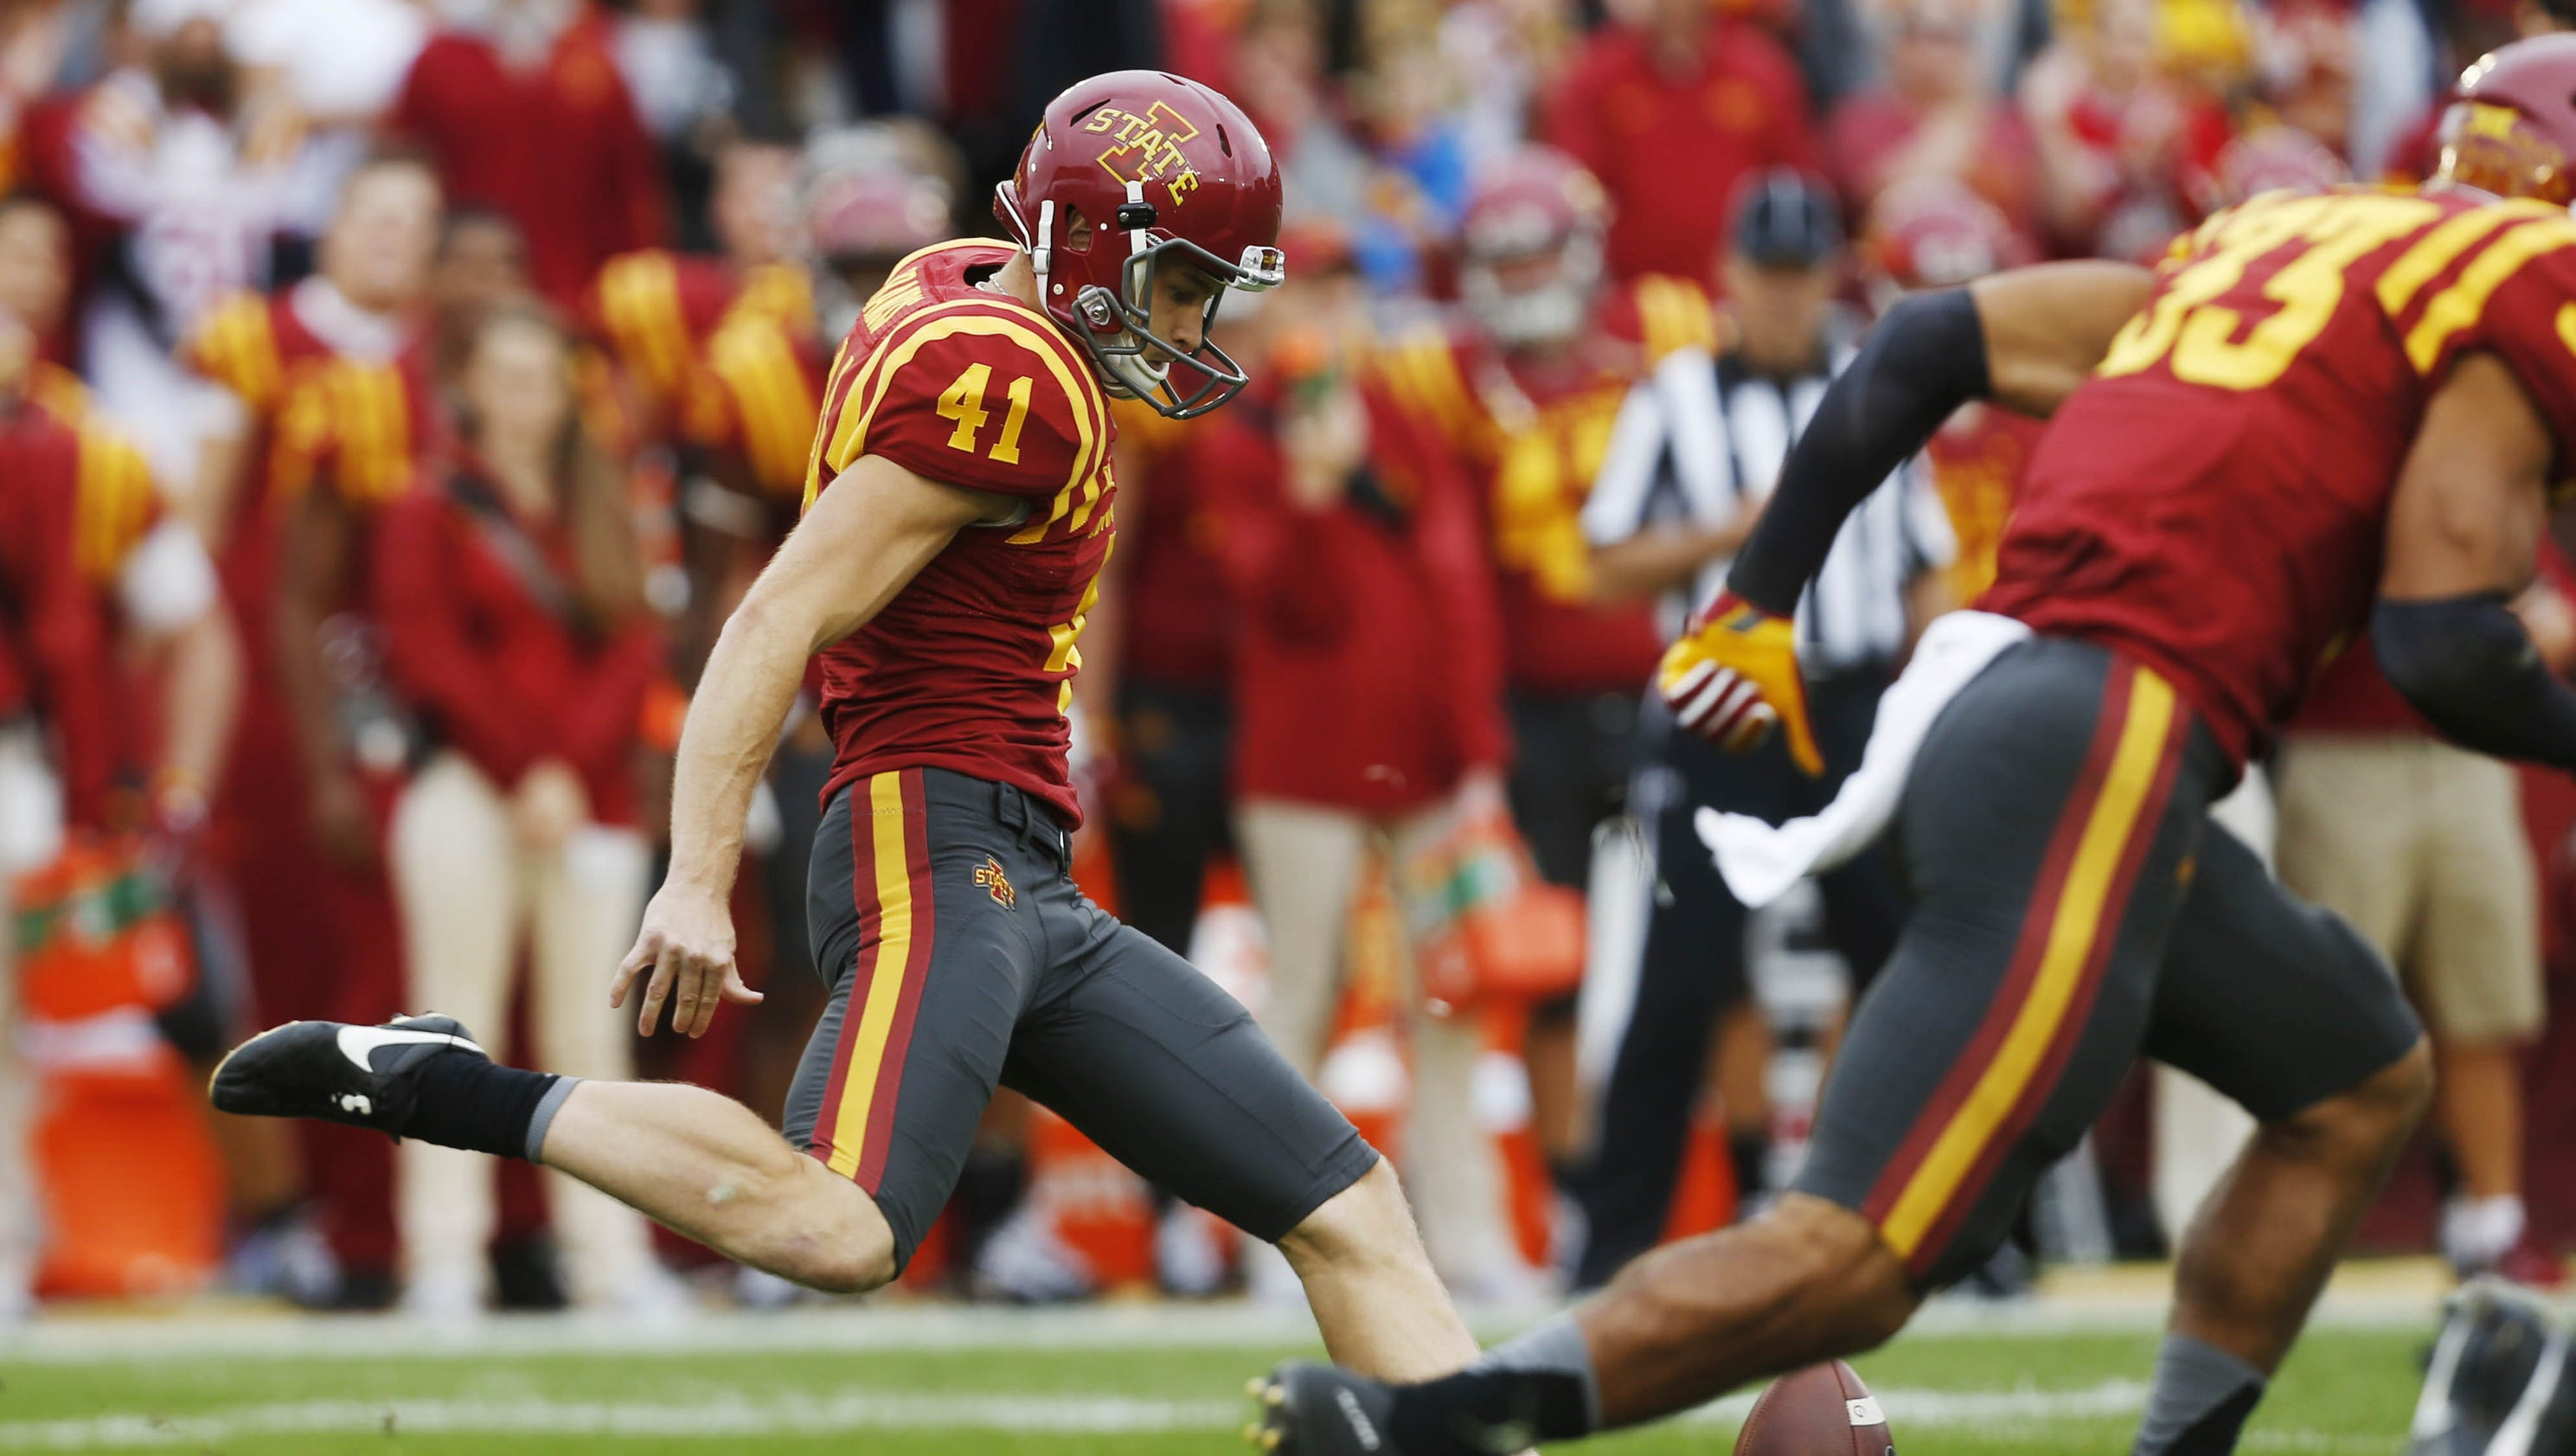 father u0027s death inspires success in iowa state kicker chris francis